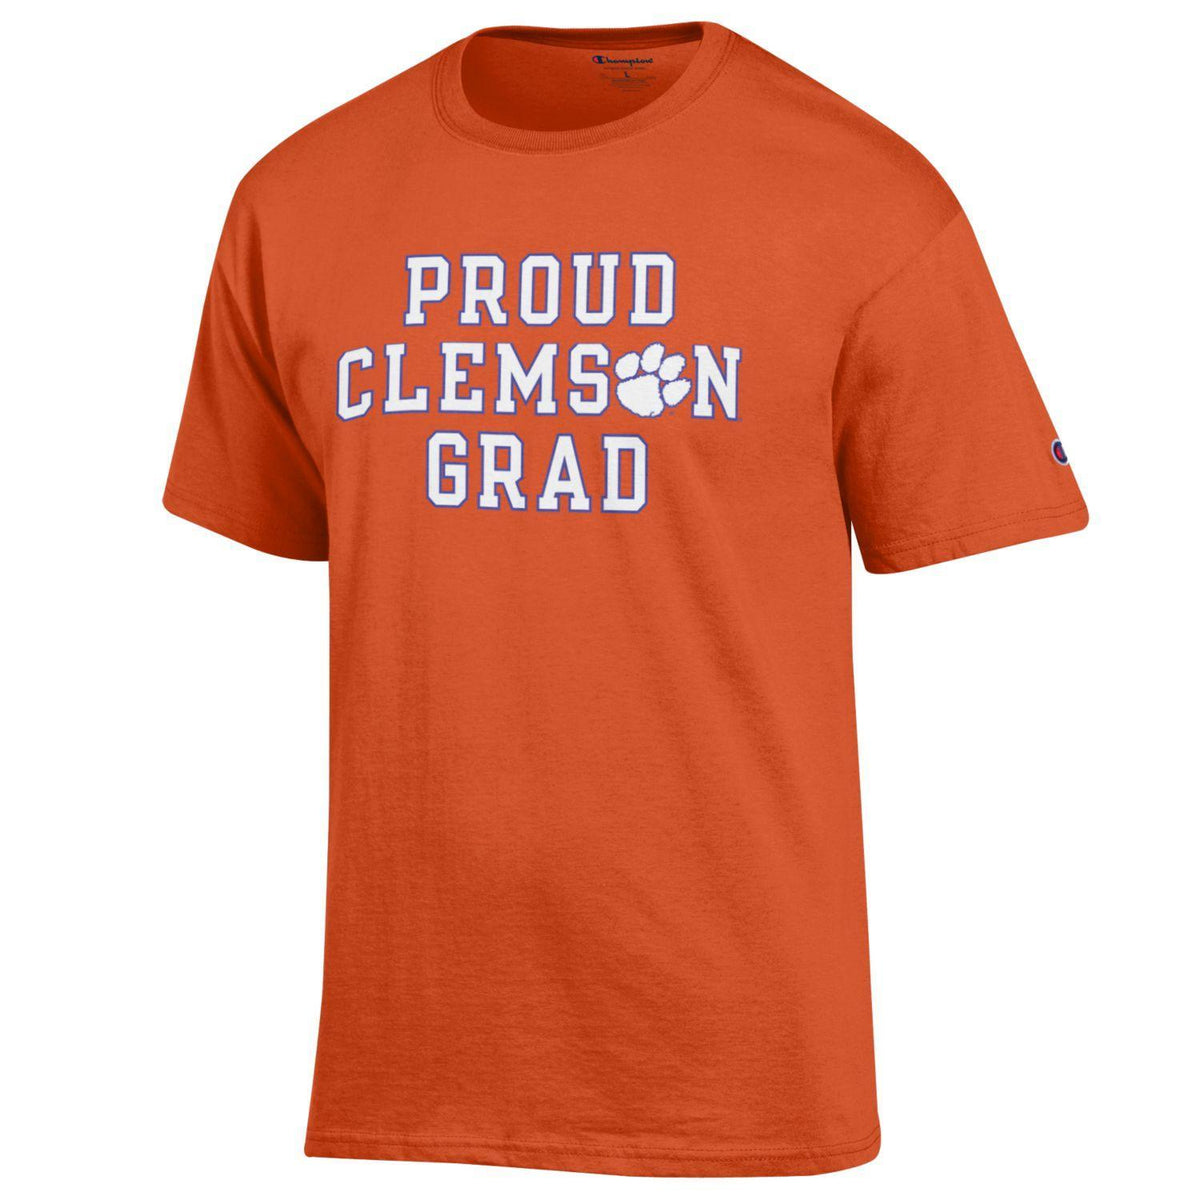 Champion Proud Clemson Grad/CU Later Tee - Mr. Knickerbocker